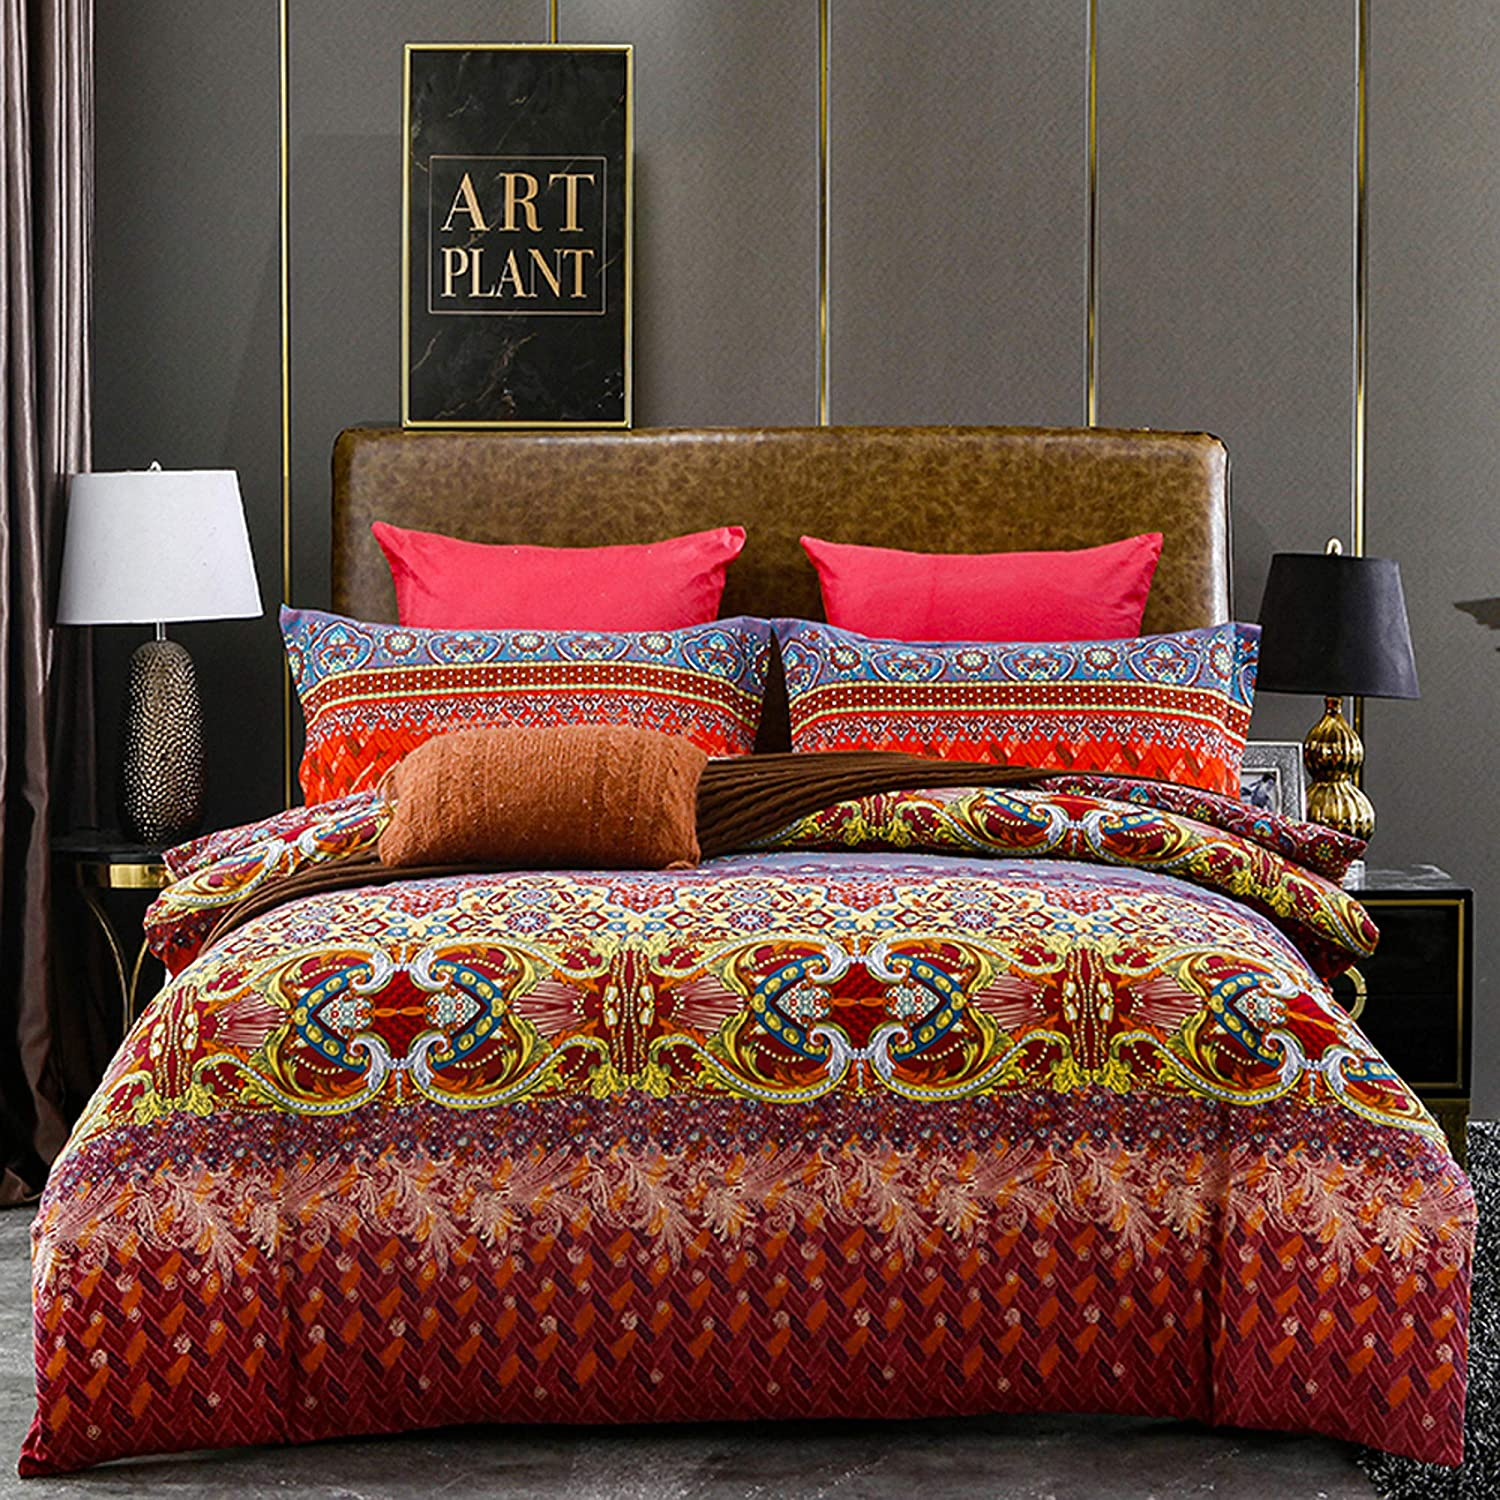 Opening large release sale Xiongfeng Retro Bohemian Duvet Cover Ethnic Boho King Bed Max 74% OFF Floral